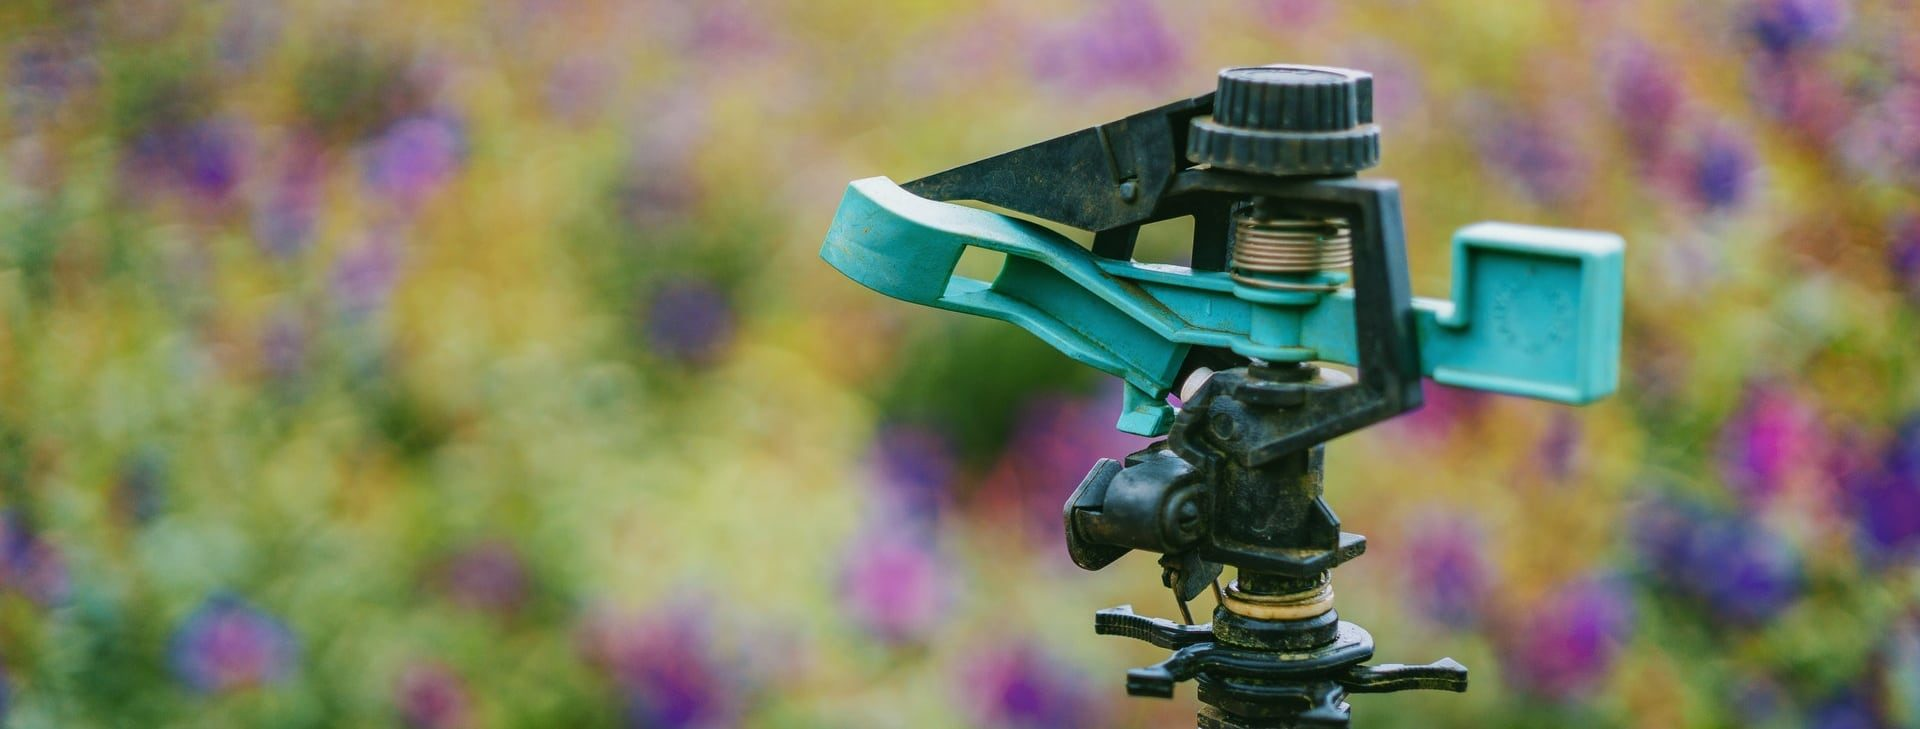 Irrigation Services for Home or Business!